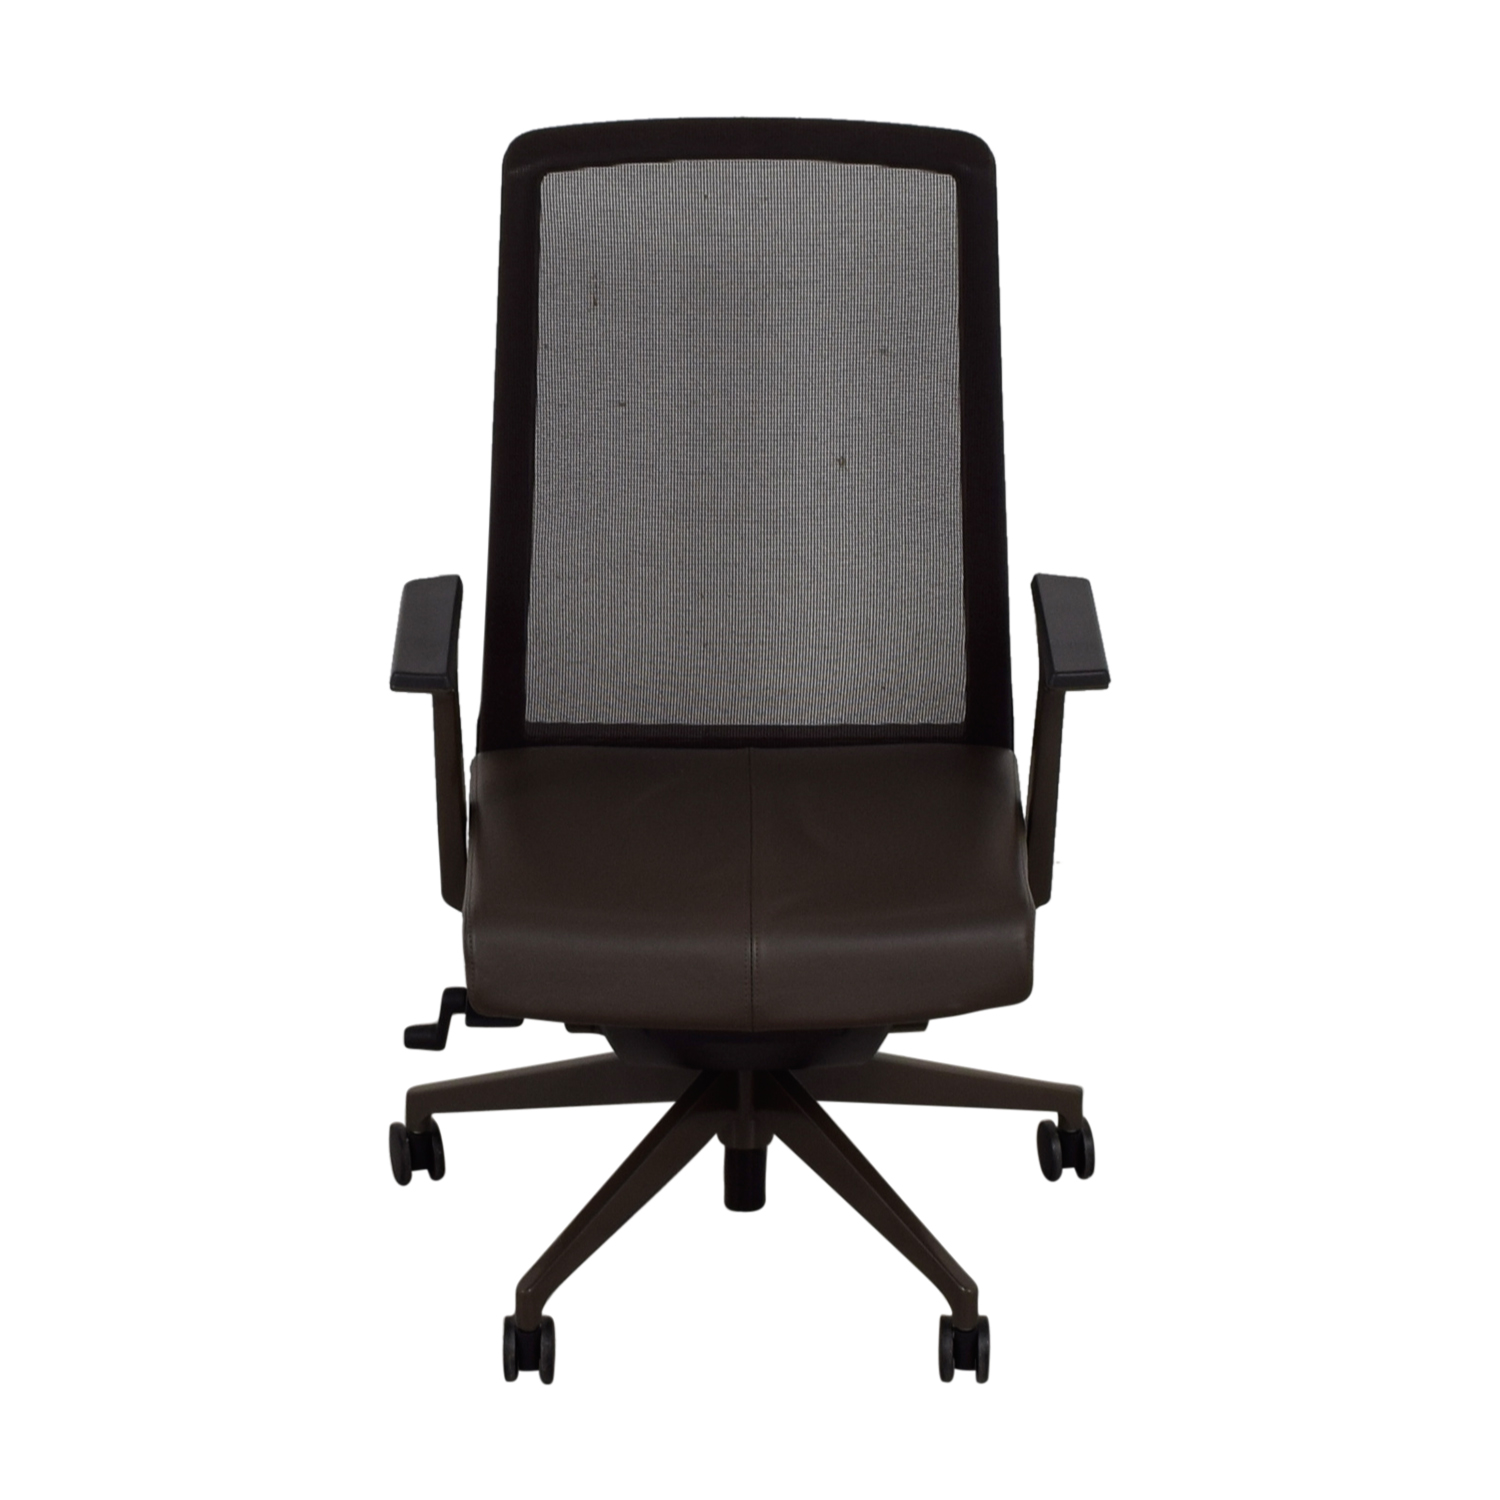 Crate & Barrel Crate & Barrel Haworth Brown Very Task Office Chair second hand